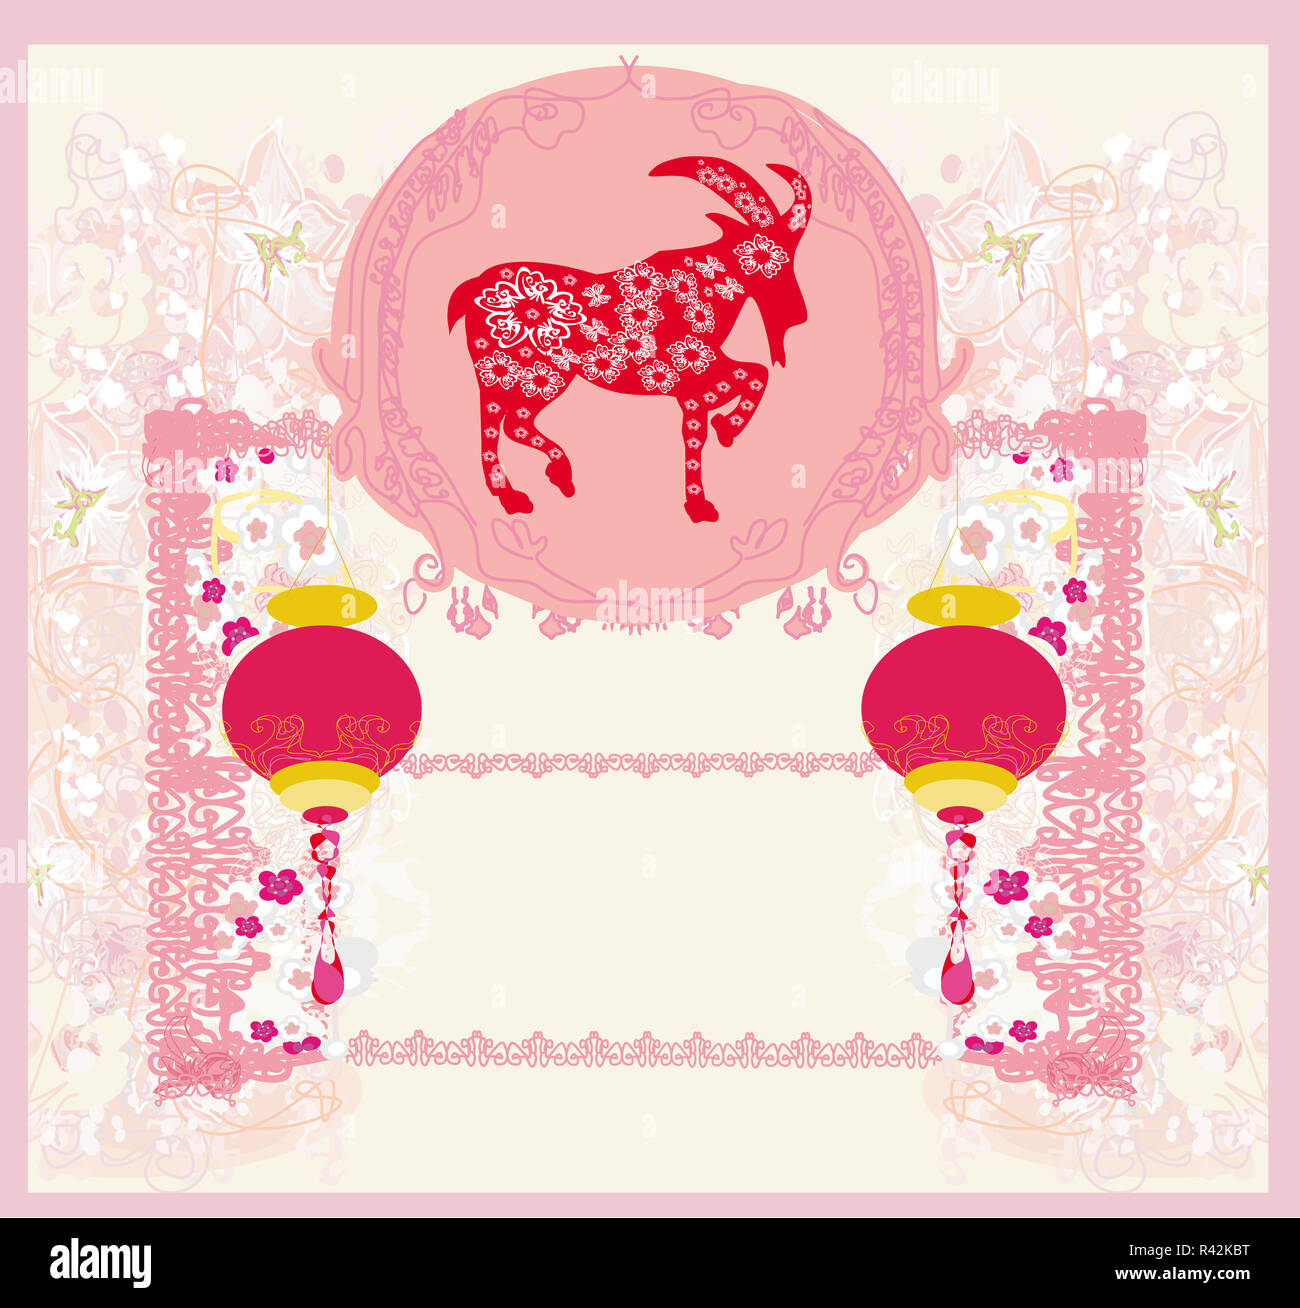 year of the goat, Chinese Mid Autumn festival - Stock Image